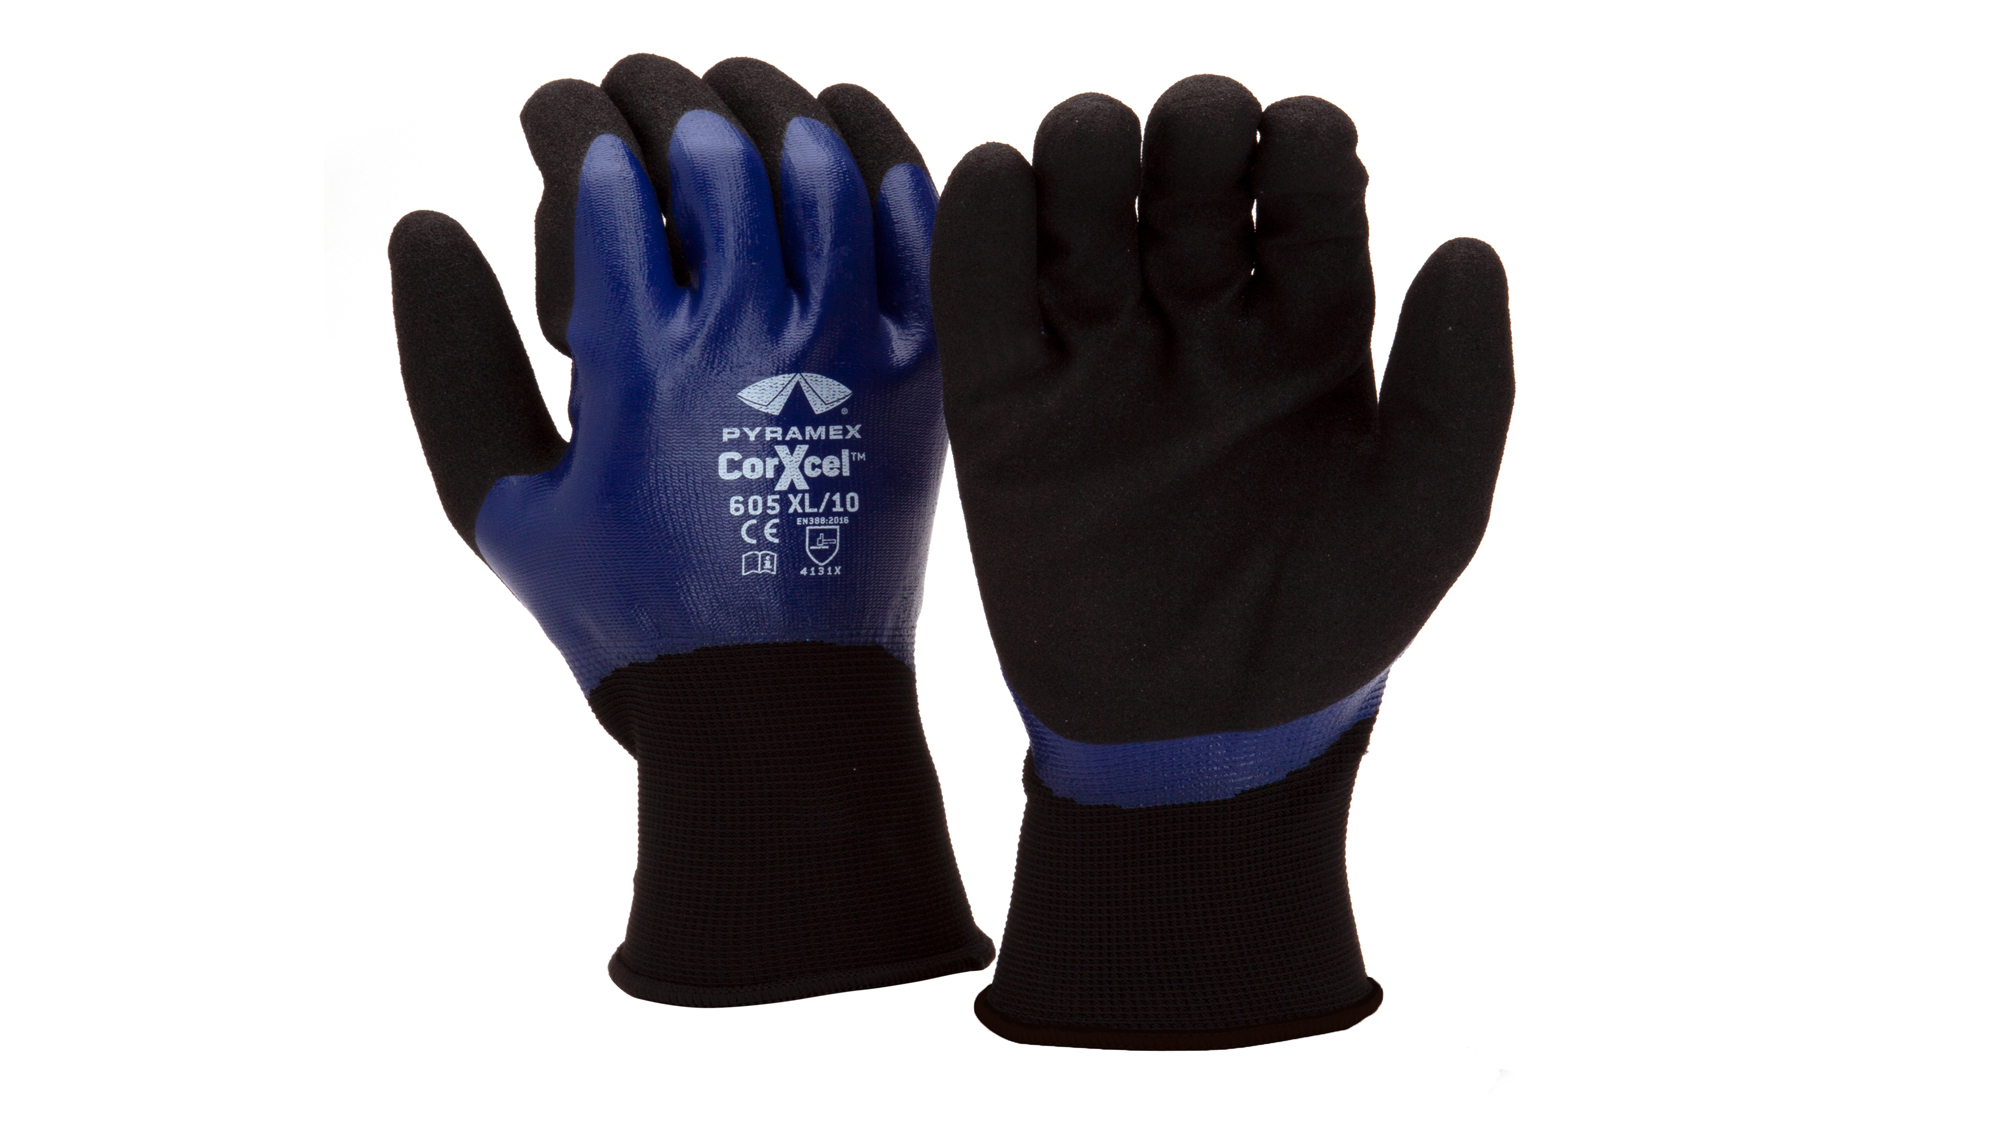 Pyramex GL605 Sandy & Smooth Nitrile Gloves